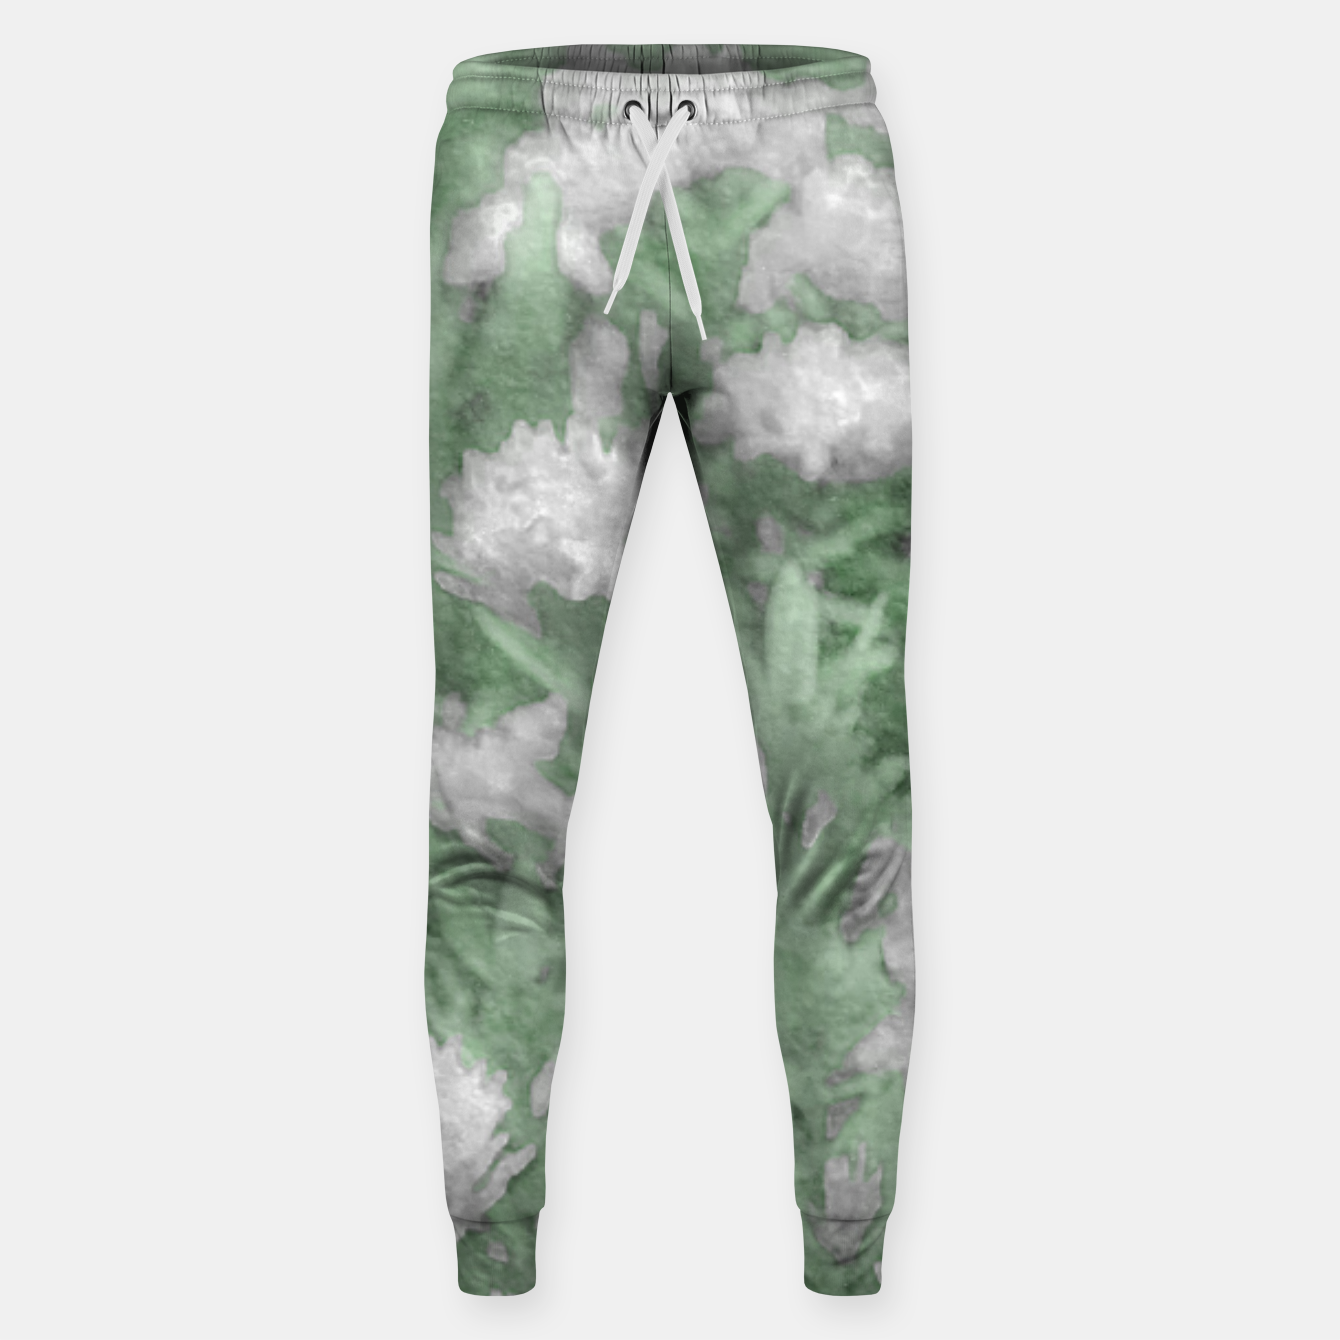 Image de Green and White Textured Botanical Motif Manipulated Photo Sweatpants - Live Heroes